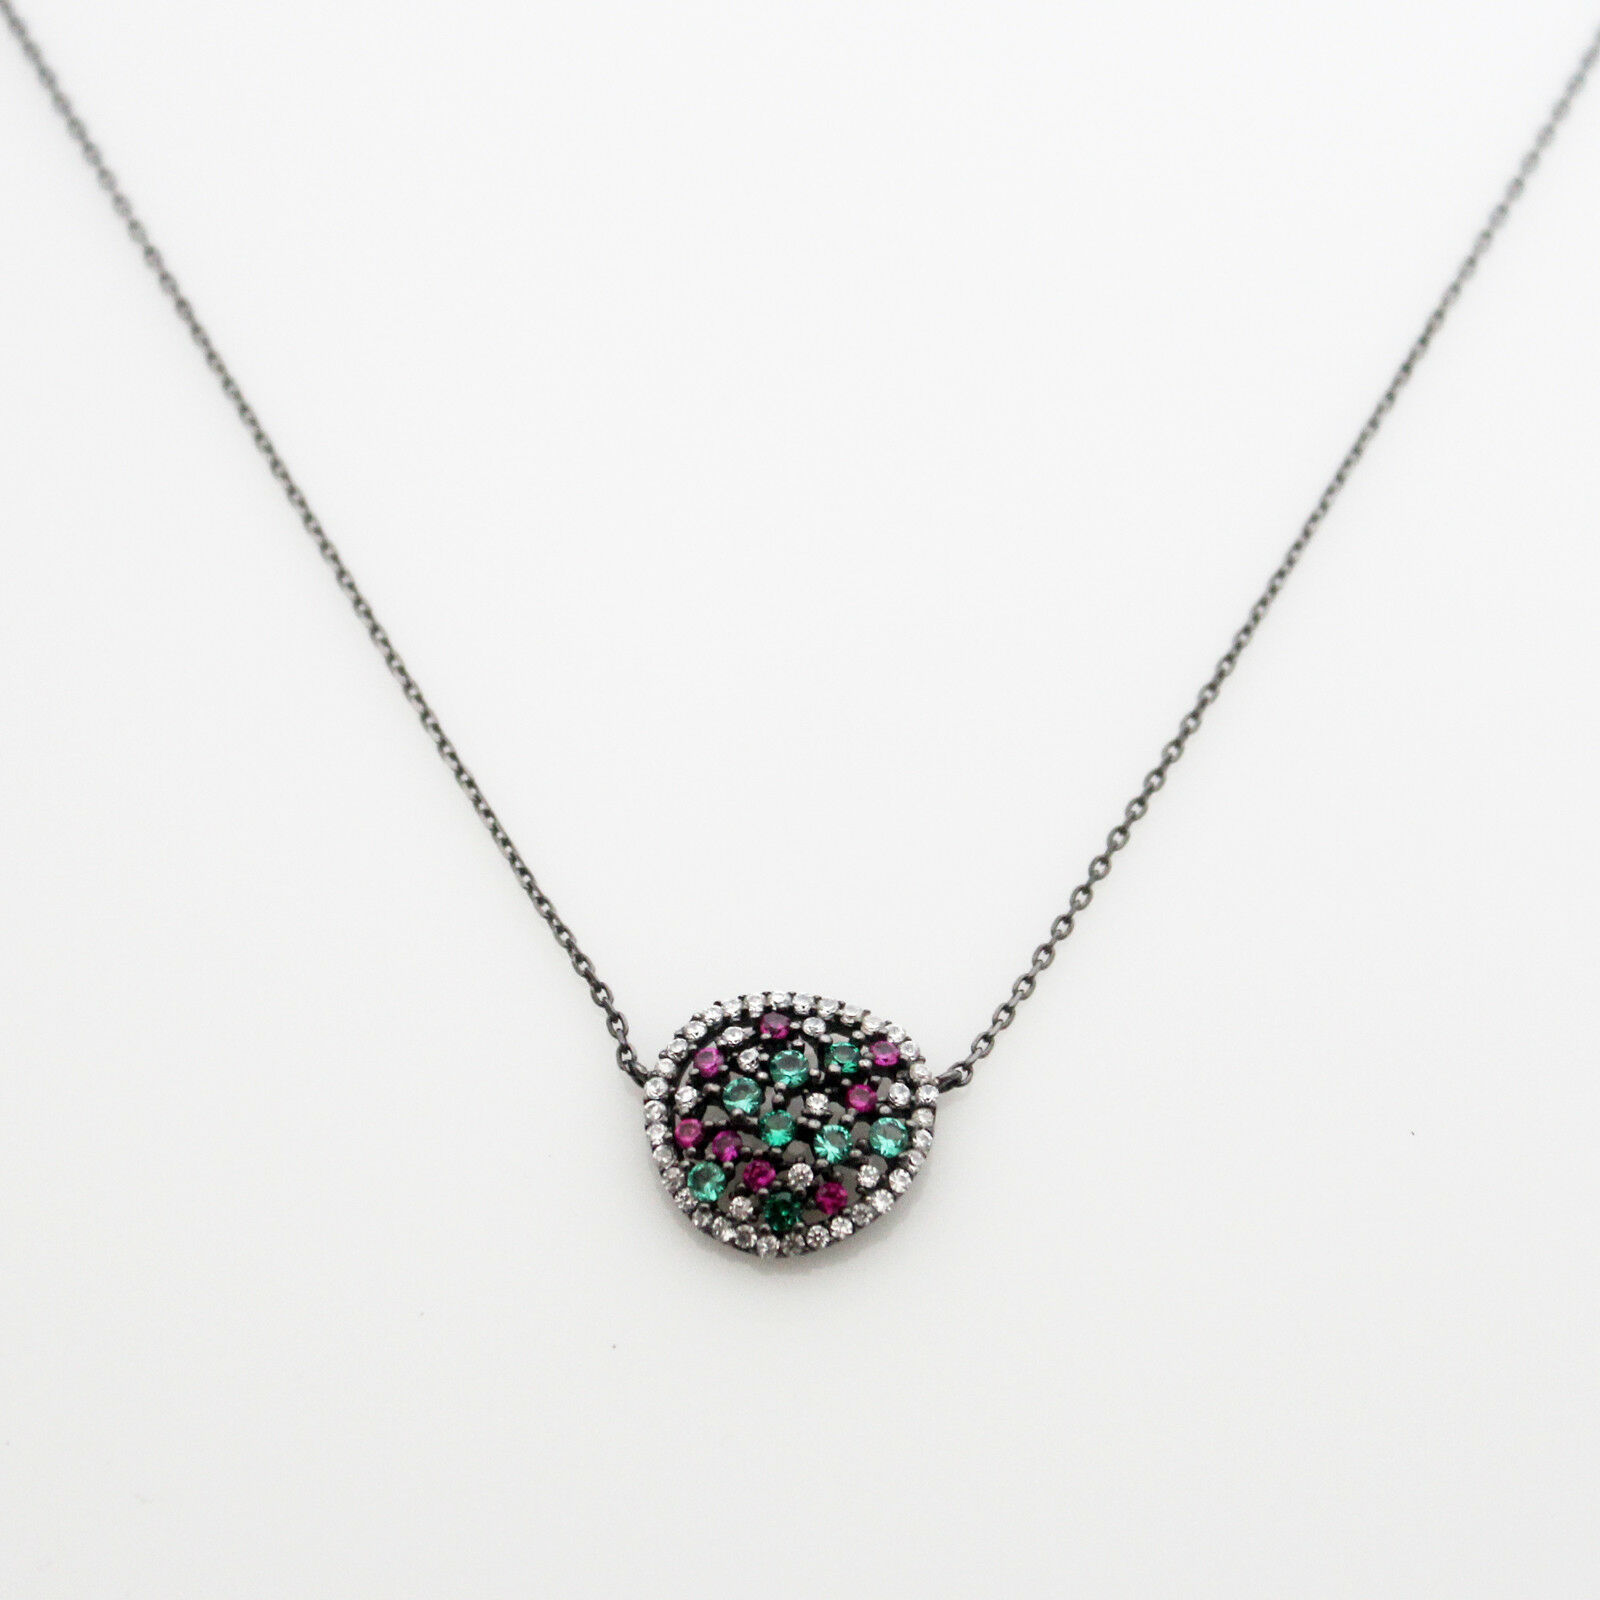 Round Circle Necklace Sterling Silver 925 Black Multi Color Cubic Zirconia